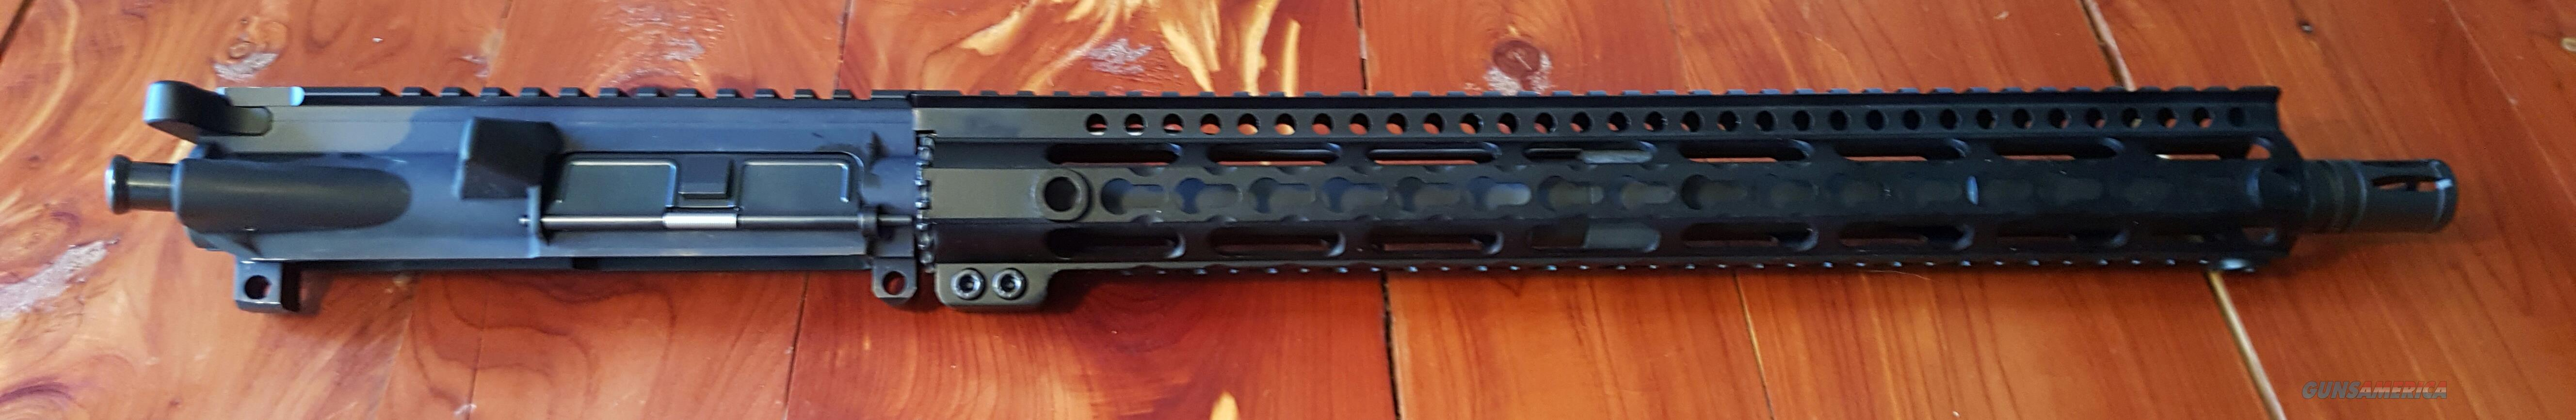 "16"" AR-15 5.56 NATO Complete Upper with Free Float handguard   Non-Guns > Gun Parts > M16-AR15 > Upper Only"